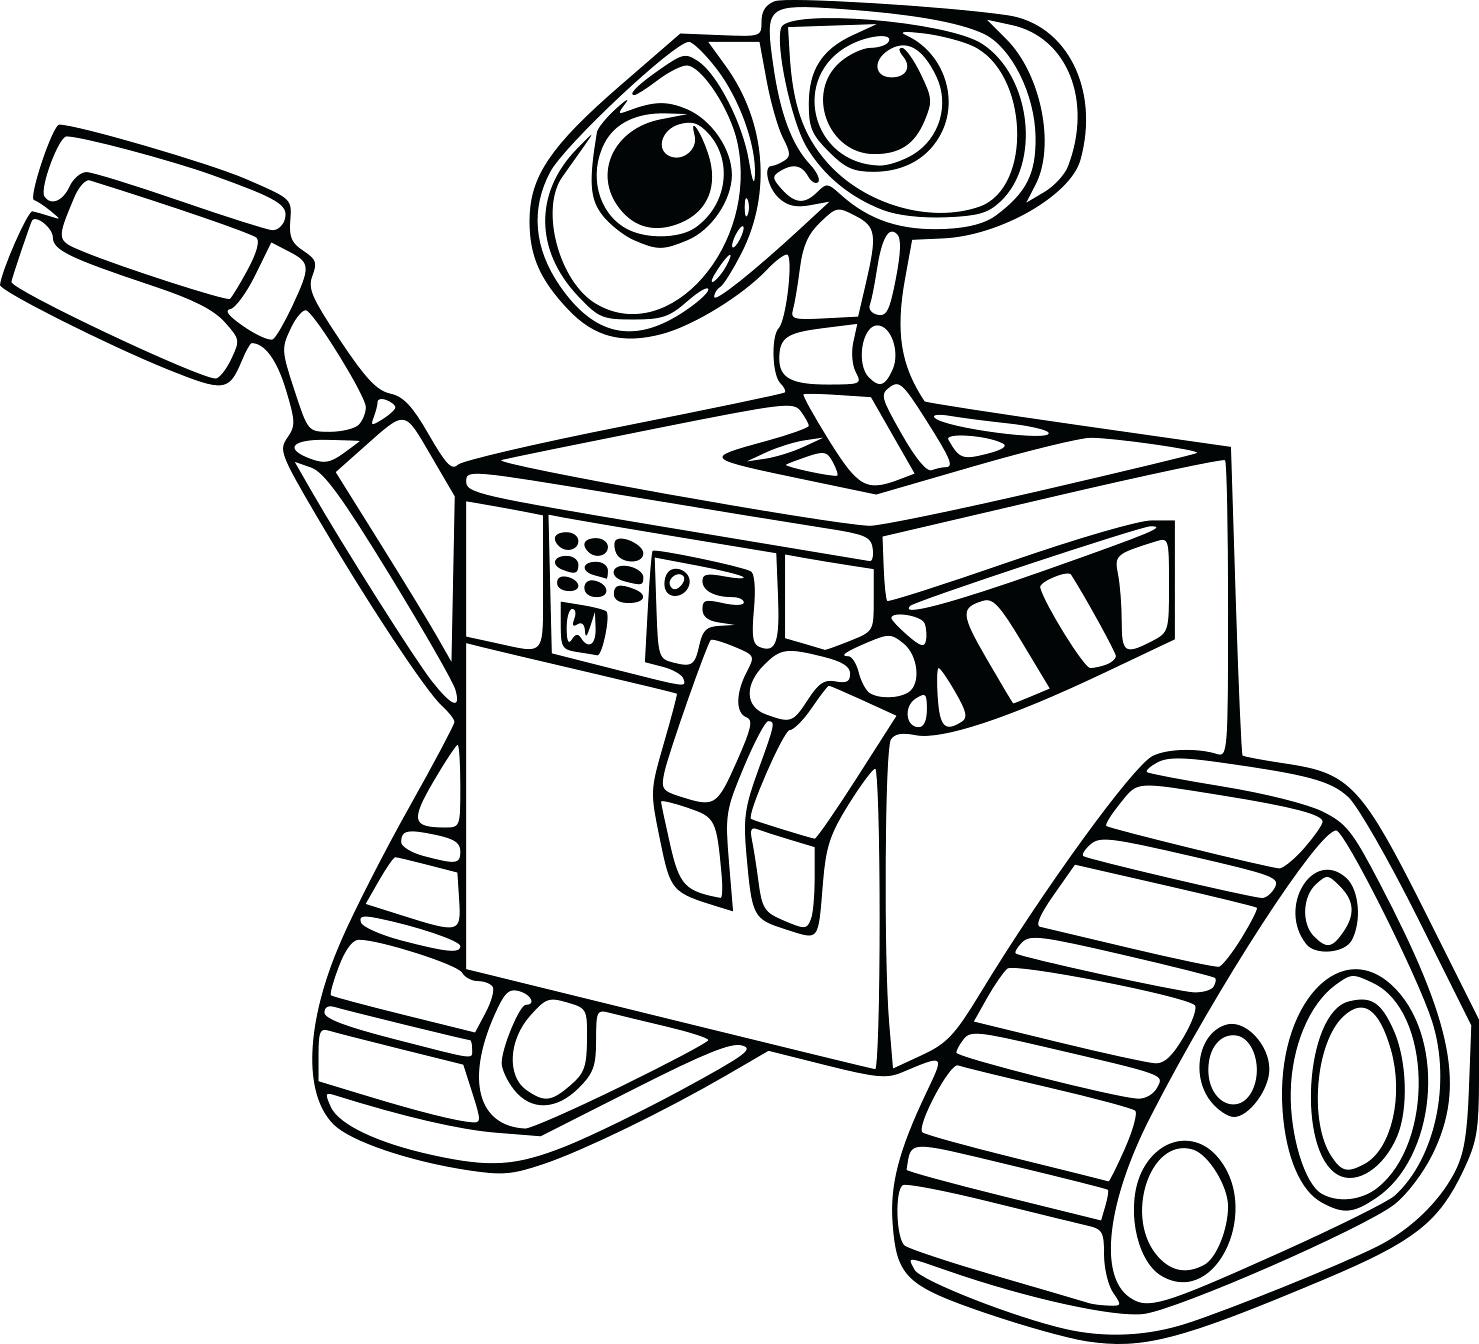 1479x1344 Coloring Pages Wall E Coloring Pages And Eve Nehemiah Wall E